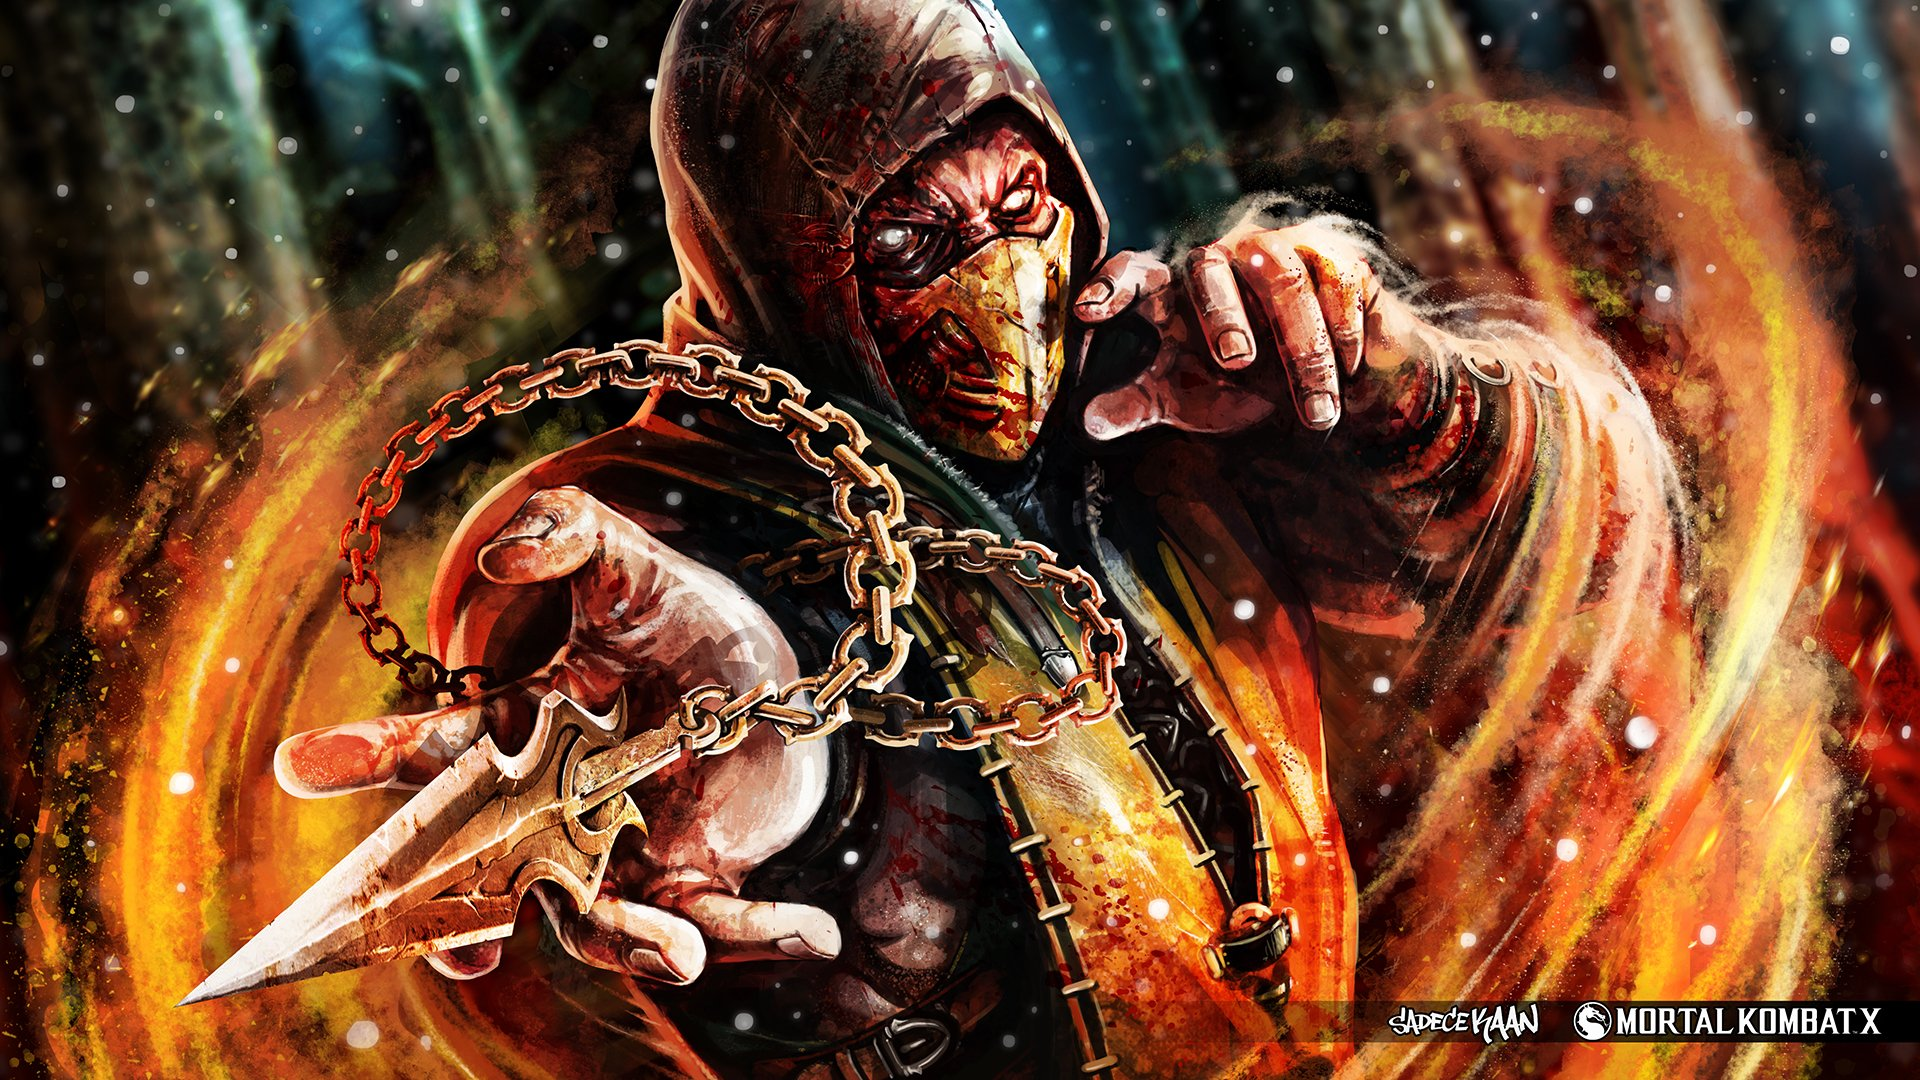 350 Mortal Kombat Hd Wallpapers Background Images Wallpaper Abyss